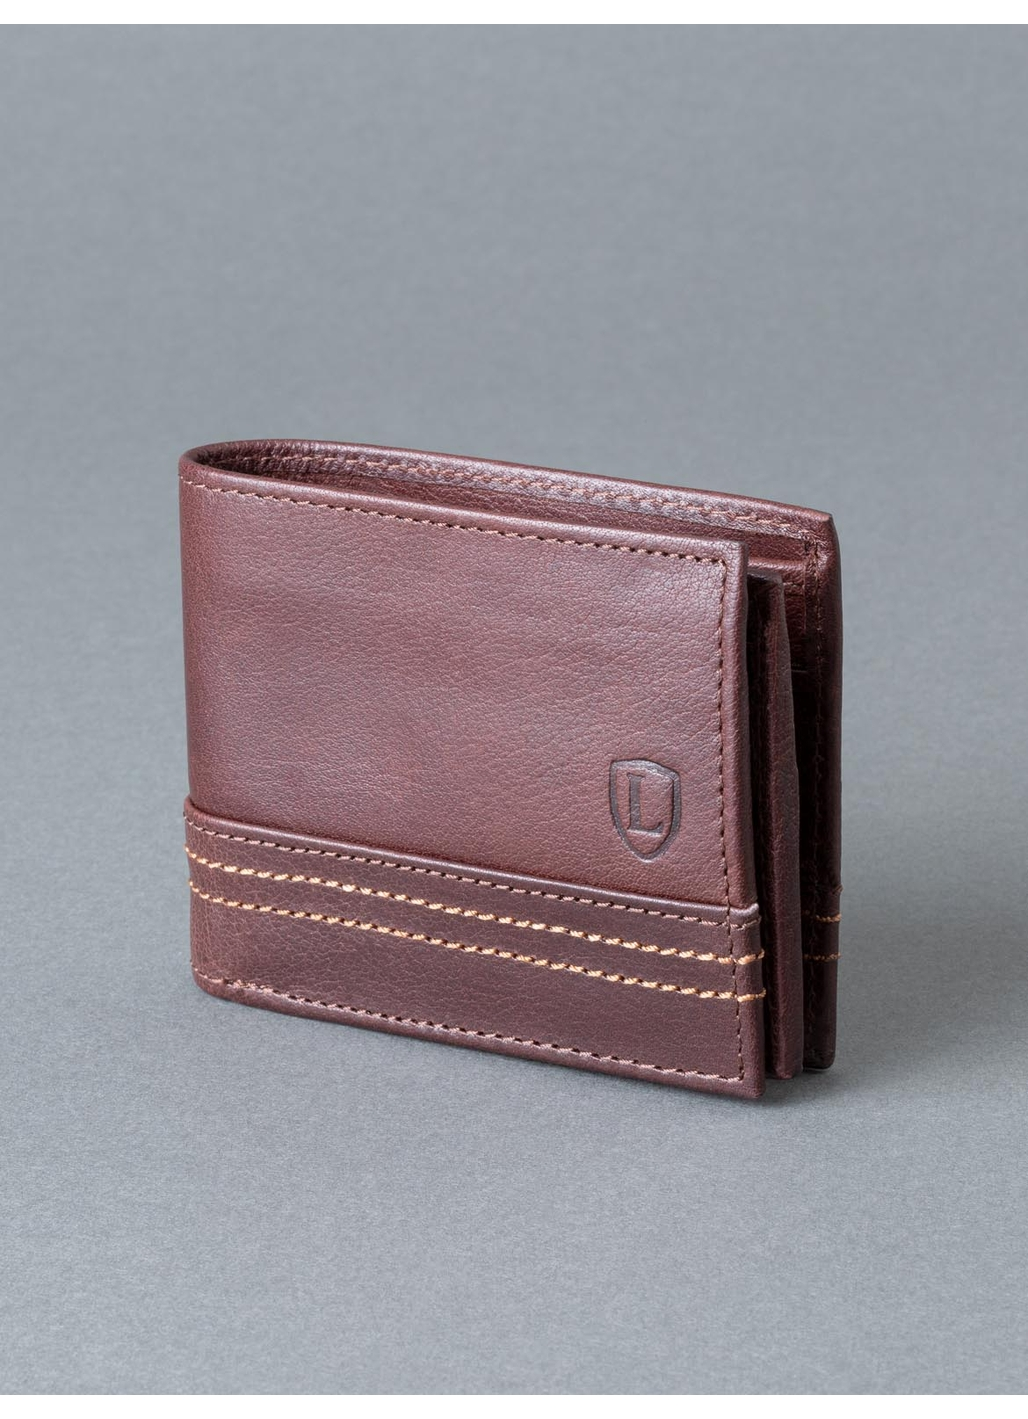 Keswick Leather Wallet in Brown